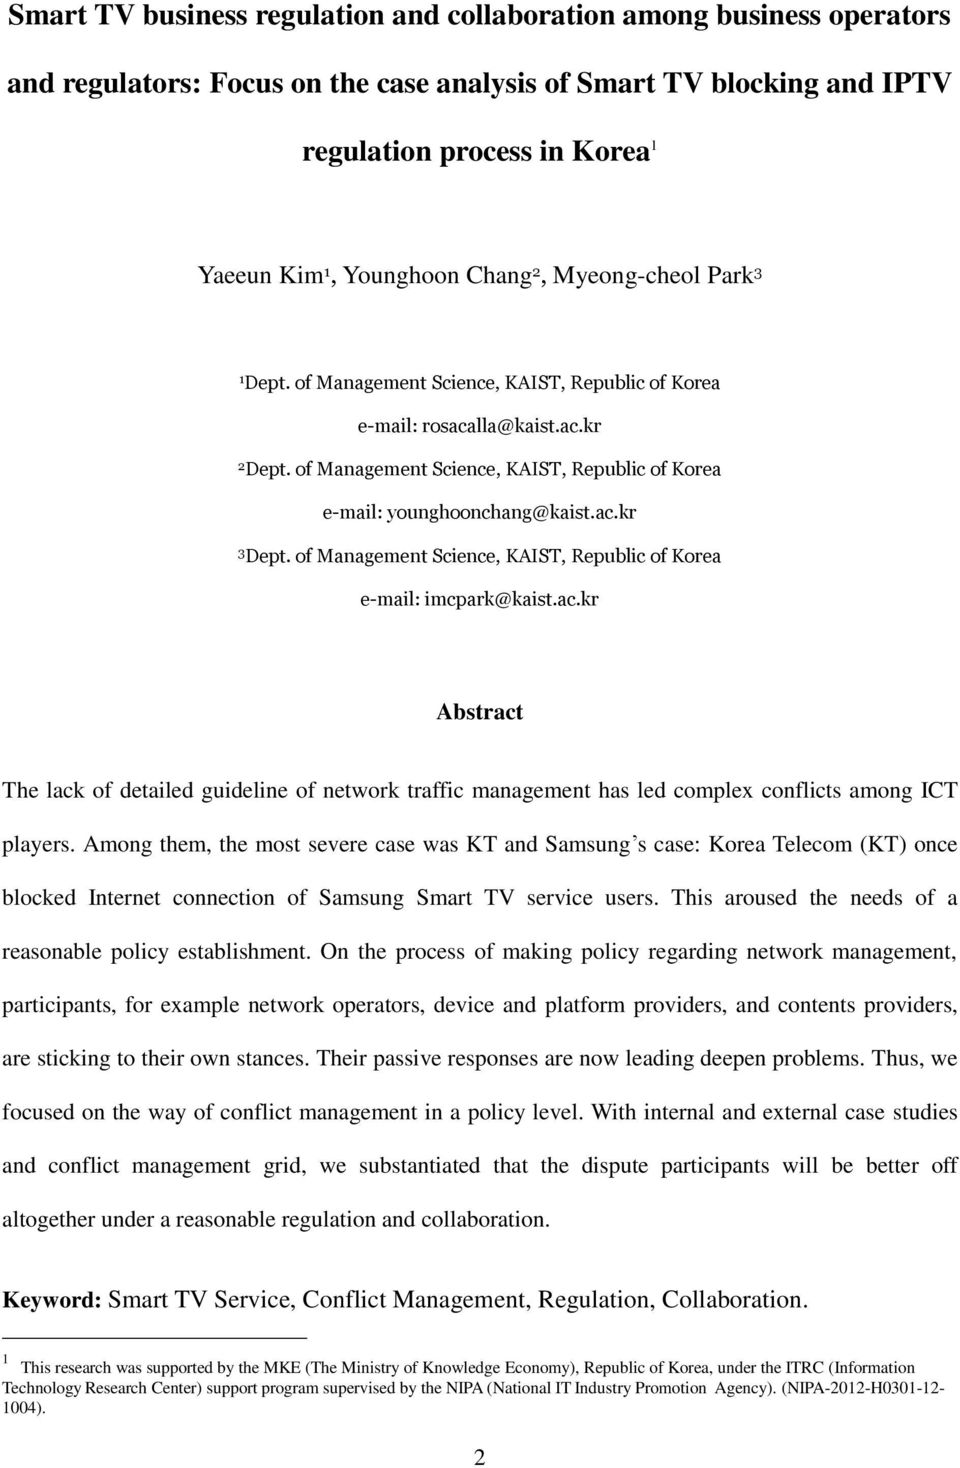 ac.kr 3 Dept. of Management Science, KAIST, Republic of Korea e-mail: imcpark@kaist.ac.kr Abstract The lack of detailed guideline of network traffic management has led complex conflicts among ICT players.